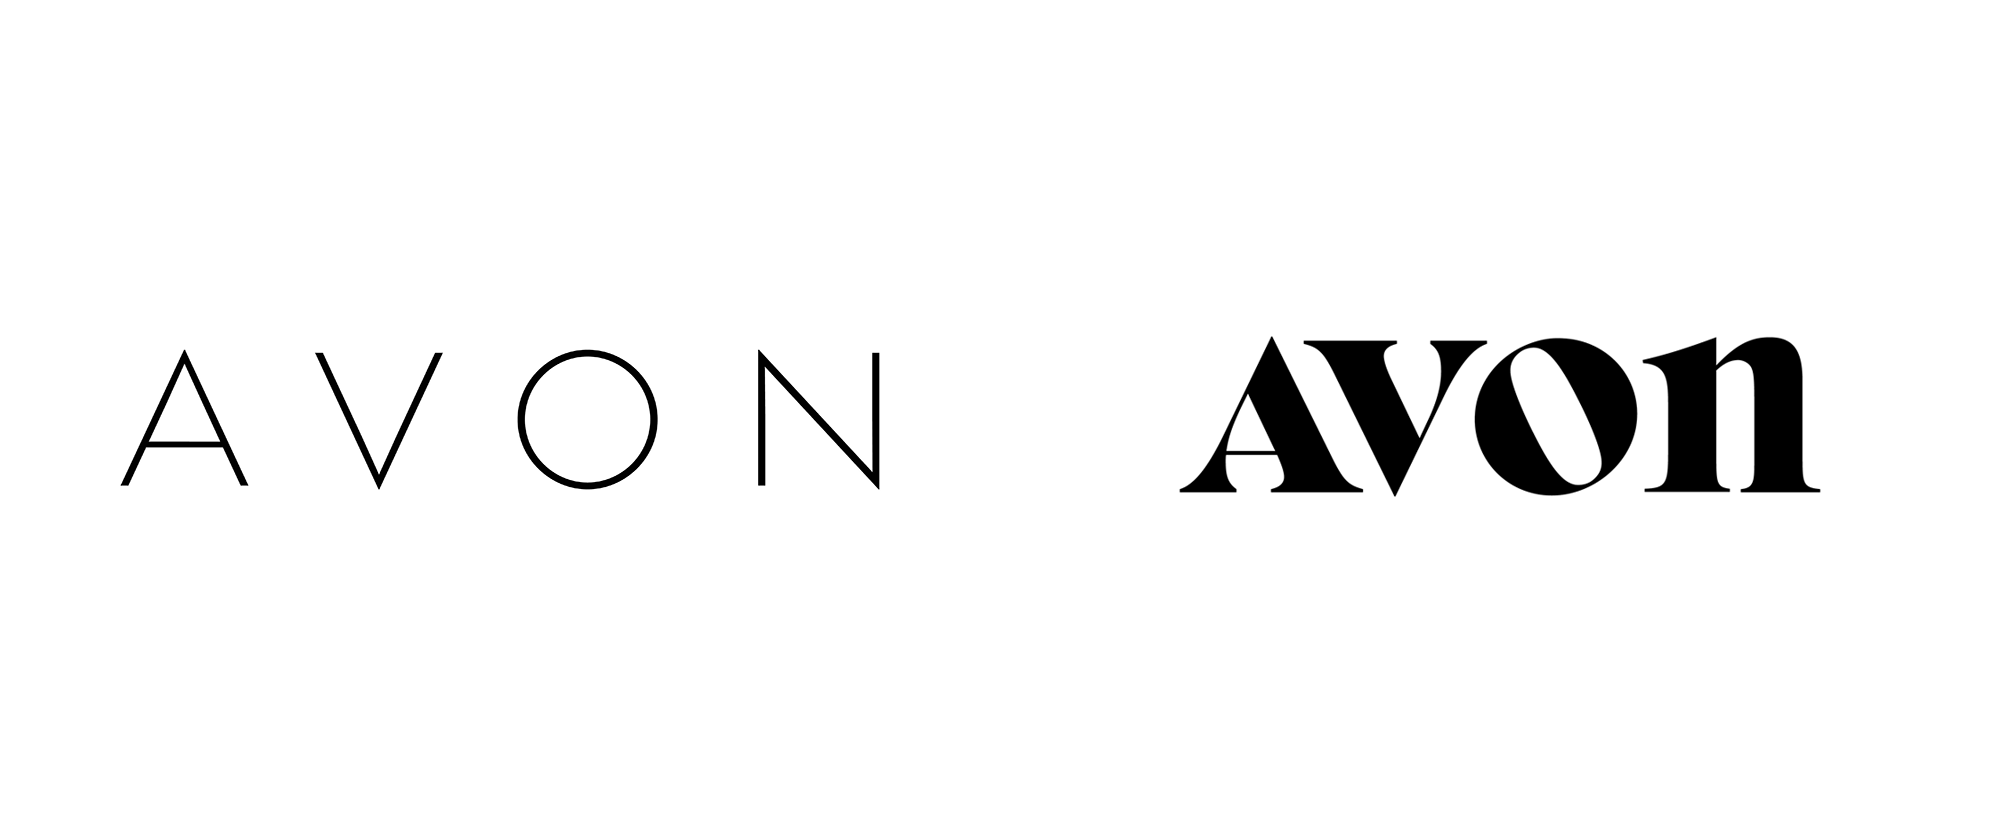 Brand New: New Logo for Avon by Standard Black.